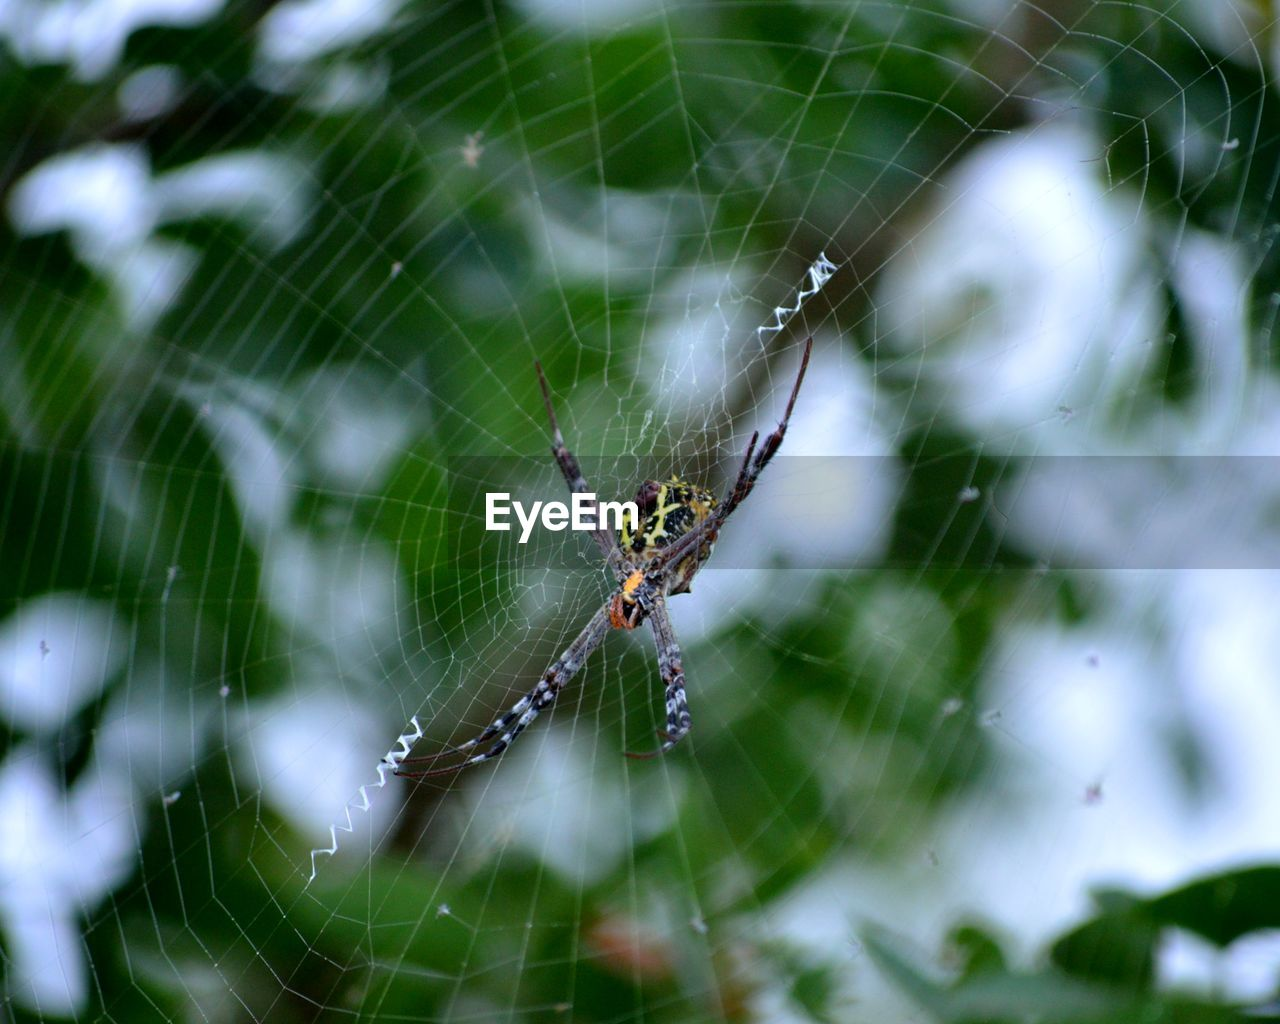 spider web, arachnid, invertebrate, animal themes, animal, animal wildlife, spider, animals in the wild, insect, fragility, arthropod, one animal, close-up, web, survival, focus on foreground, day, vulnerability, spinning, no people, animal leg, outdoors, complexity